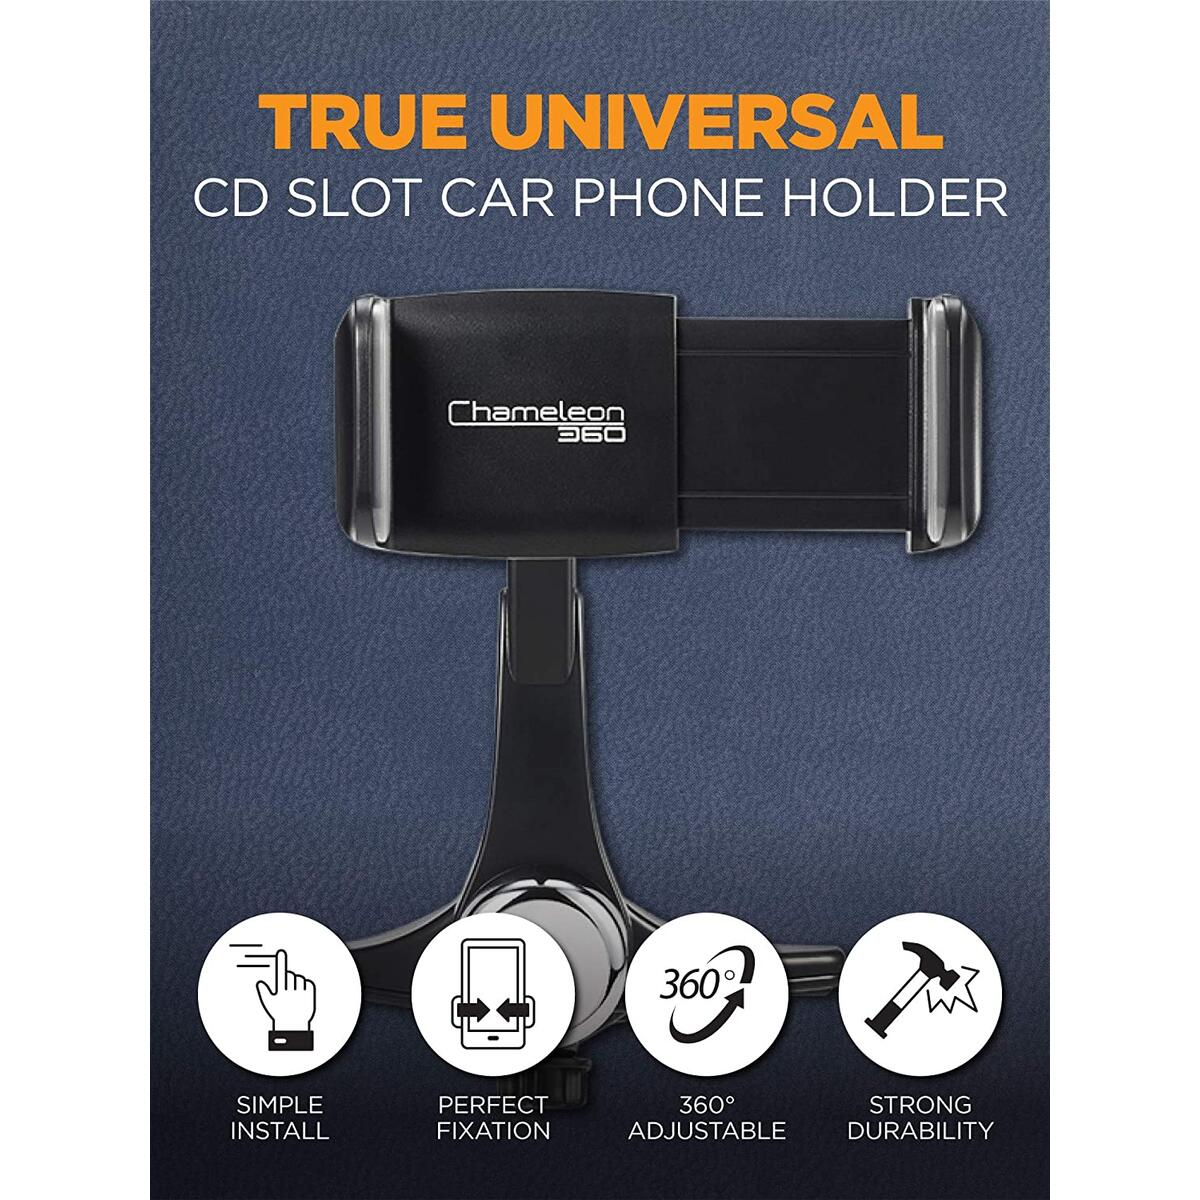 Chameleon 360 Easy Slide Long Arm 360 Degrees CD Slot Car Phone Holder for iPhone 11/11Pro/11Pro Max/Xs MAX/XR/XS/X/8/8Plus, Galaxy S10/S10+/S10e/S9/S9+/N9/S8